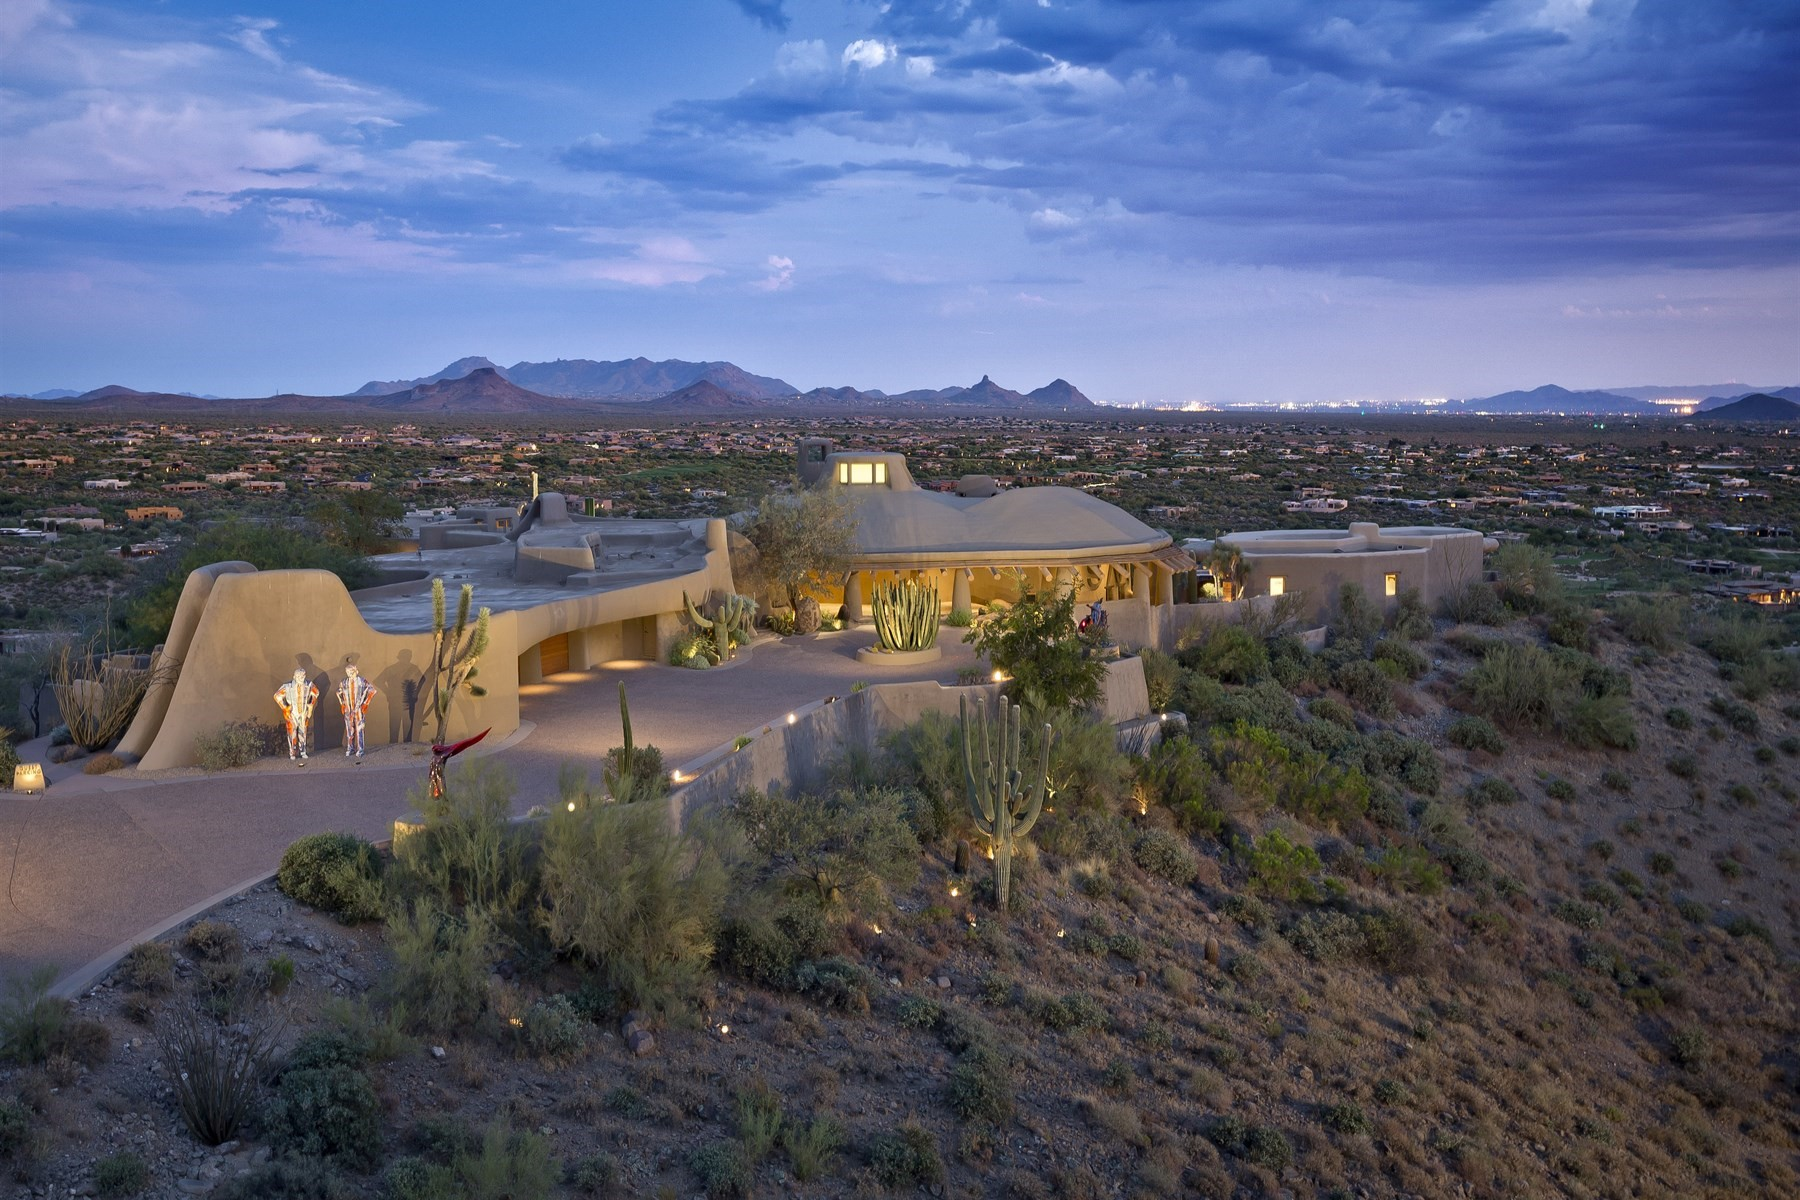 Casa Unifamiliar por un Venta en One-of-a-kind 15-acre estate that towers over the valley 39029 N Alister McKenzie Dr Scottsdale, Arizona, 85262 Estados Unidos